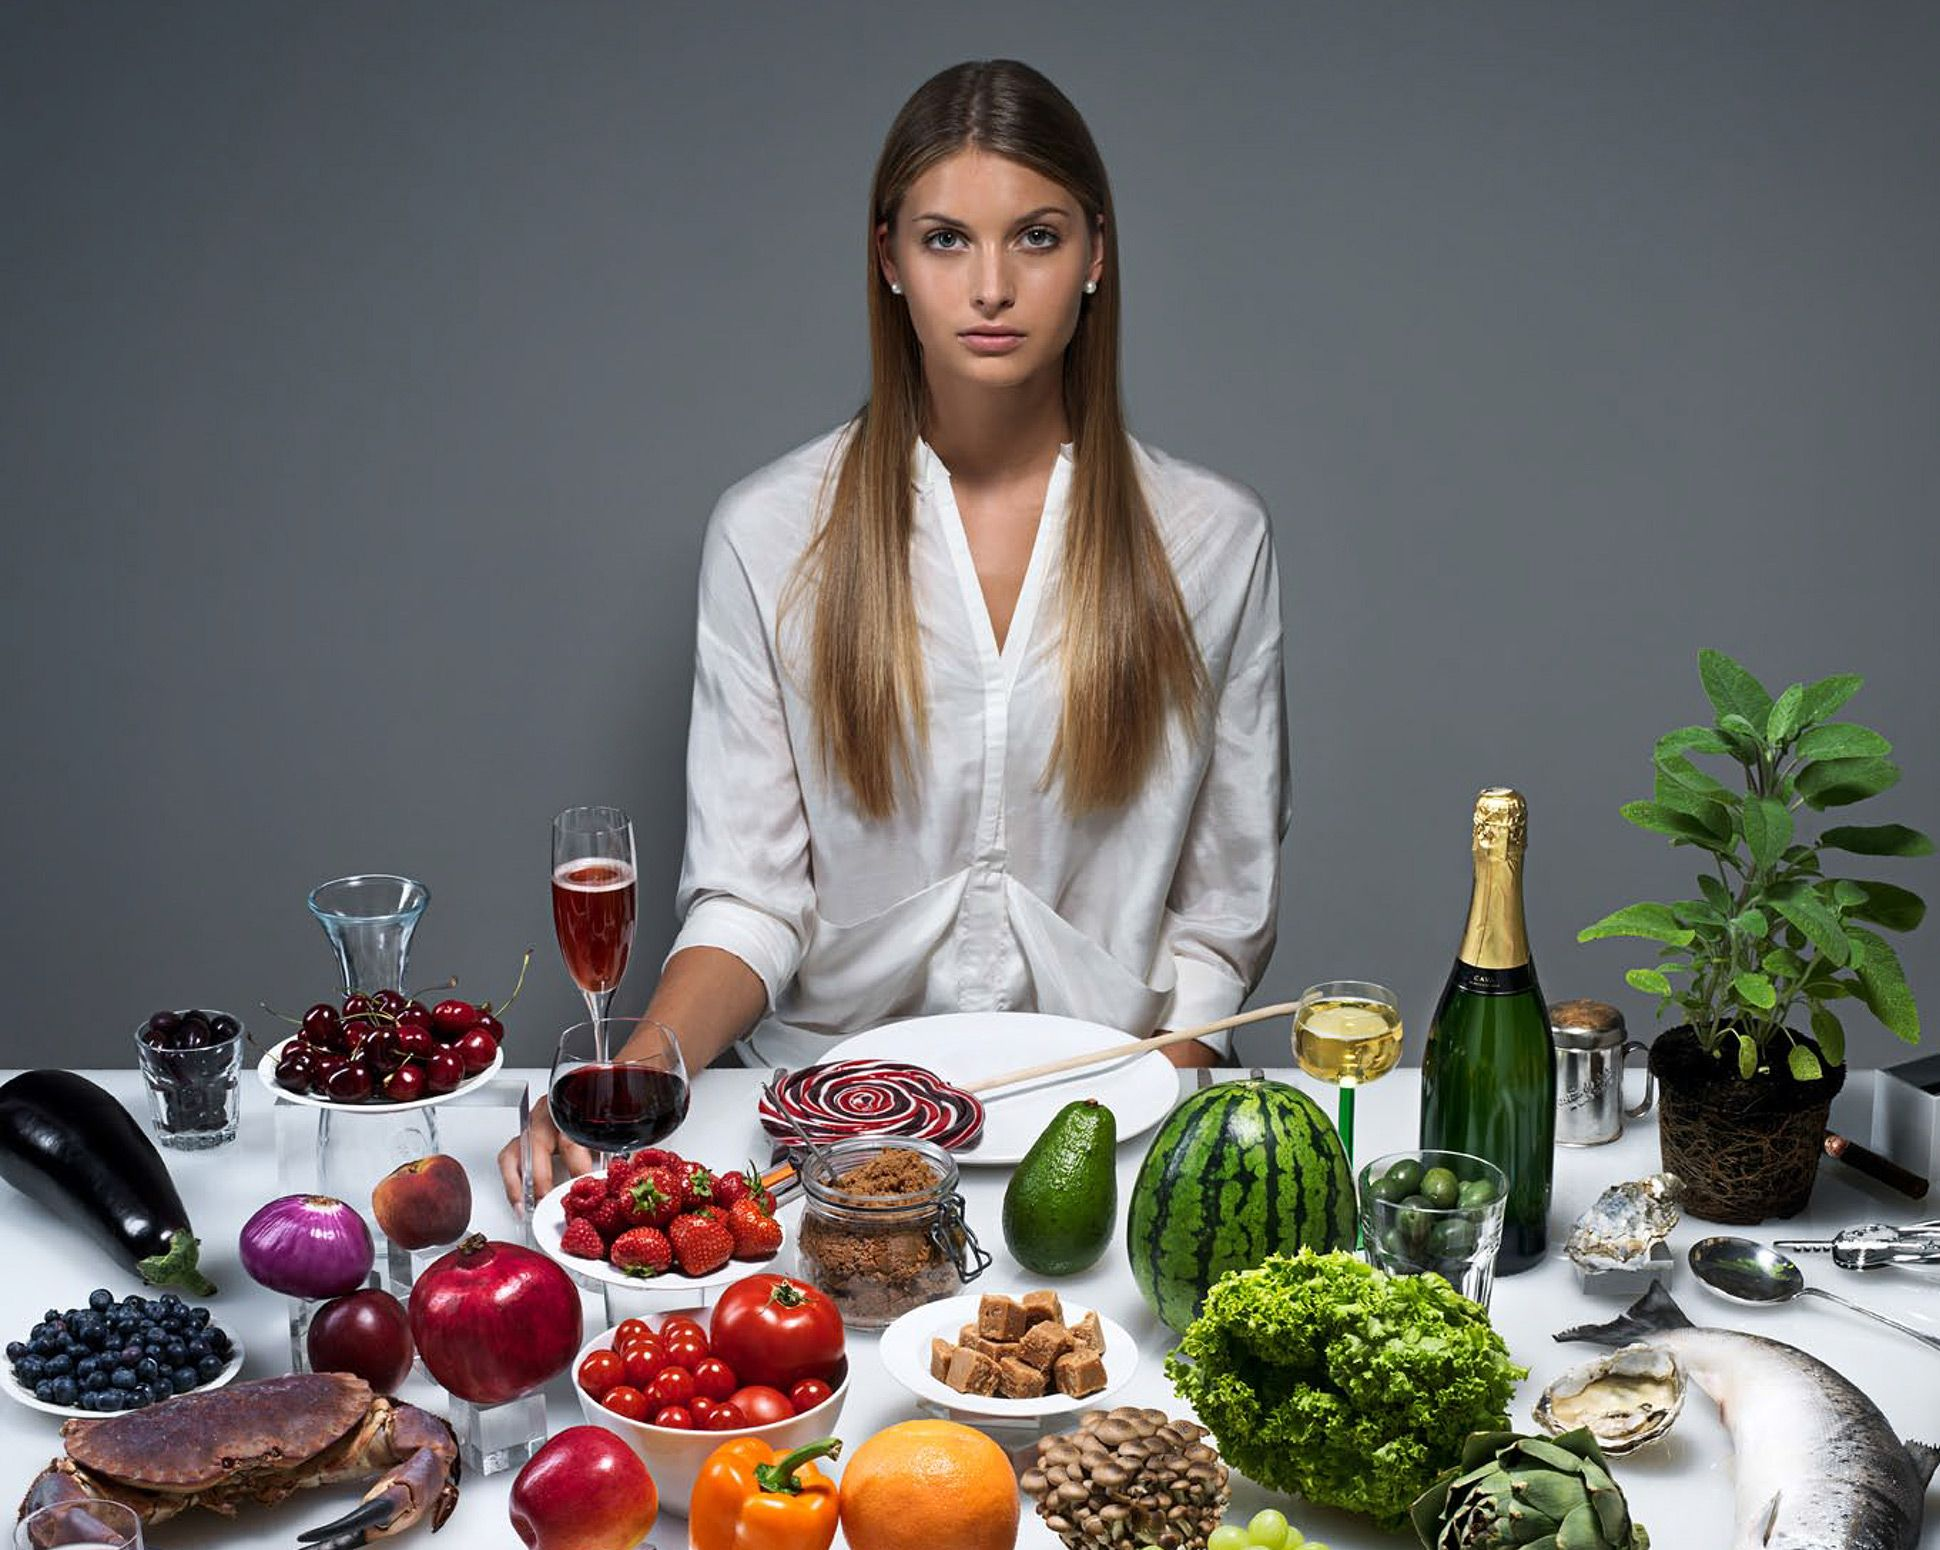 Pregnancy: What (Not) to Eat and Drink  - http://motherland.net/eat/pregnancy-eat-drink/